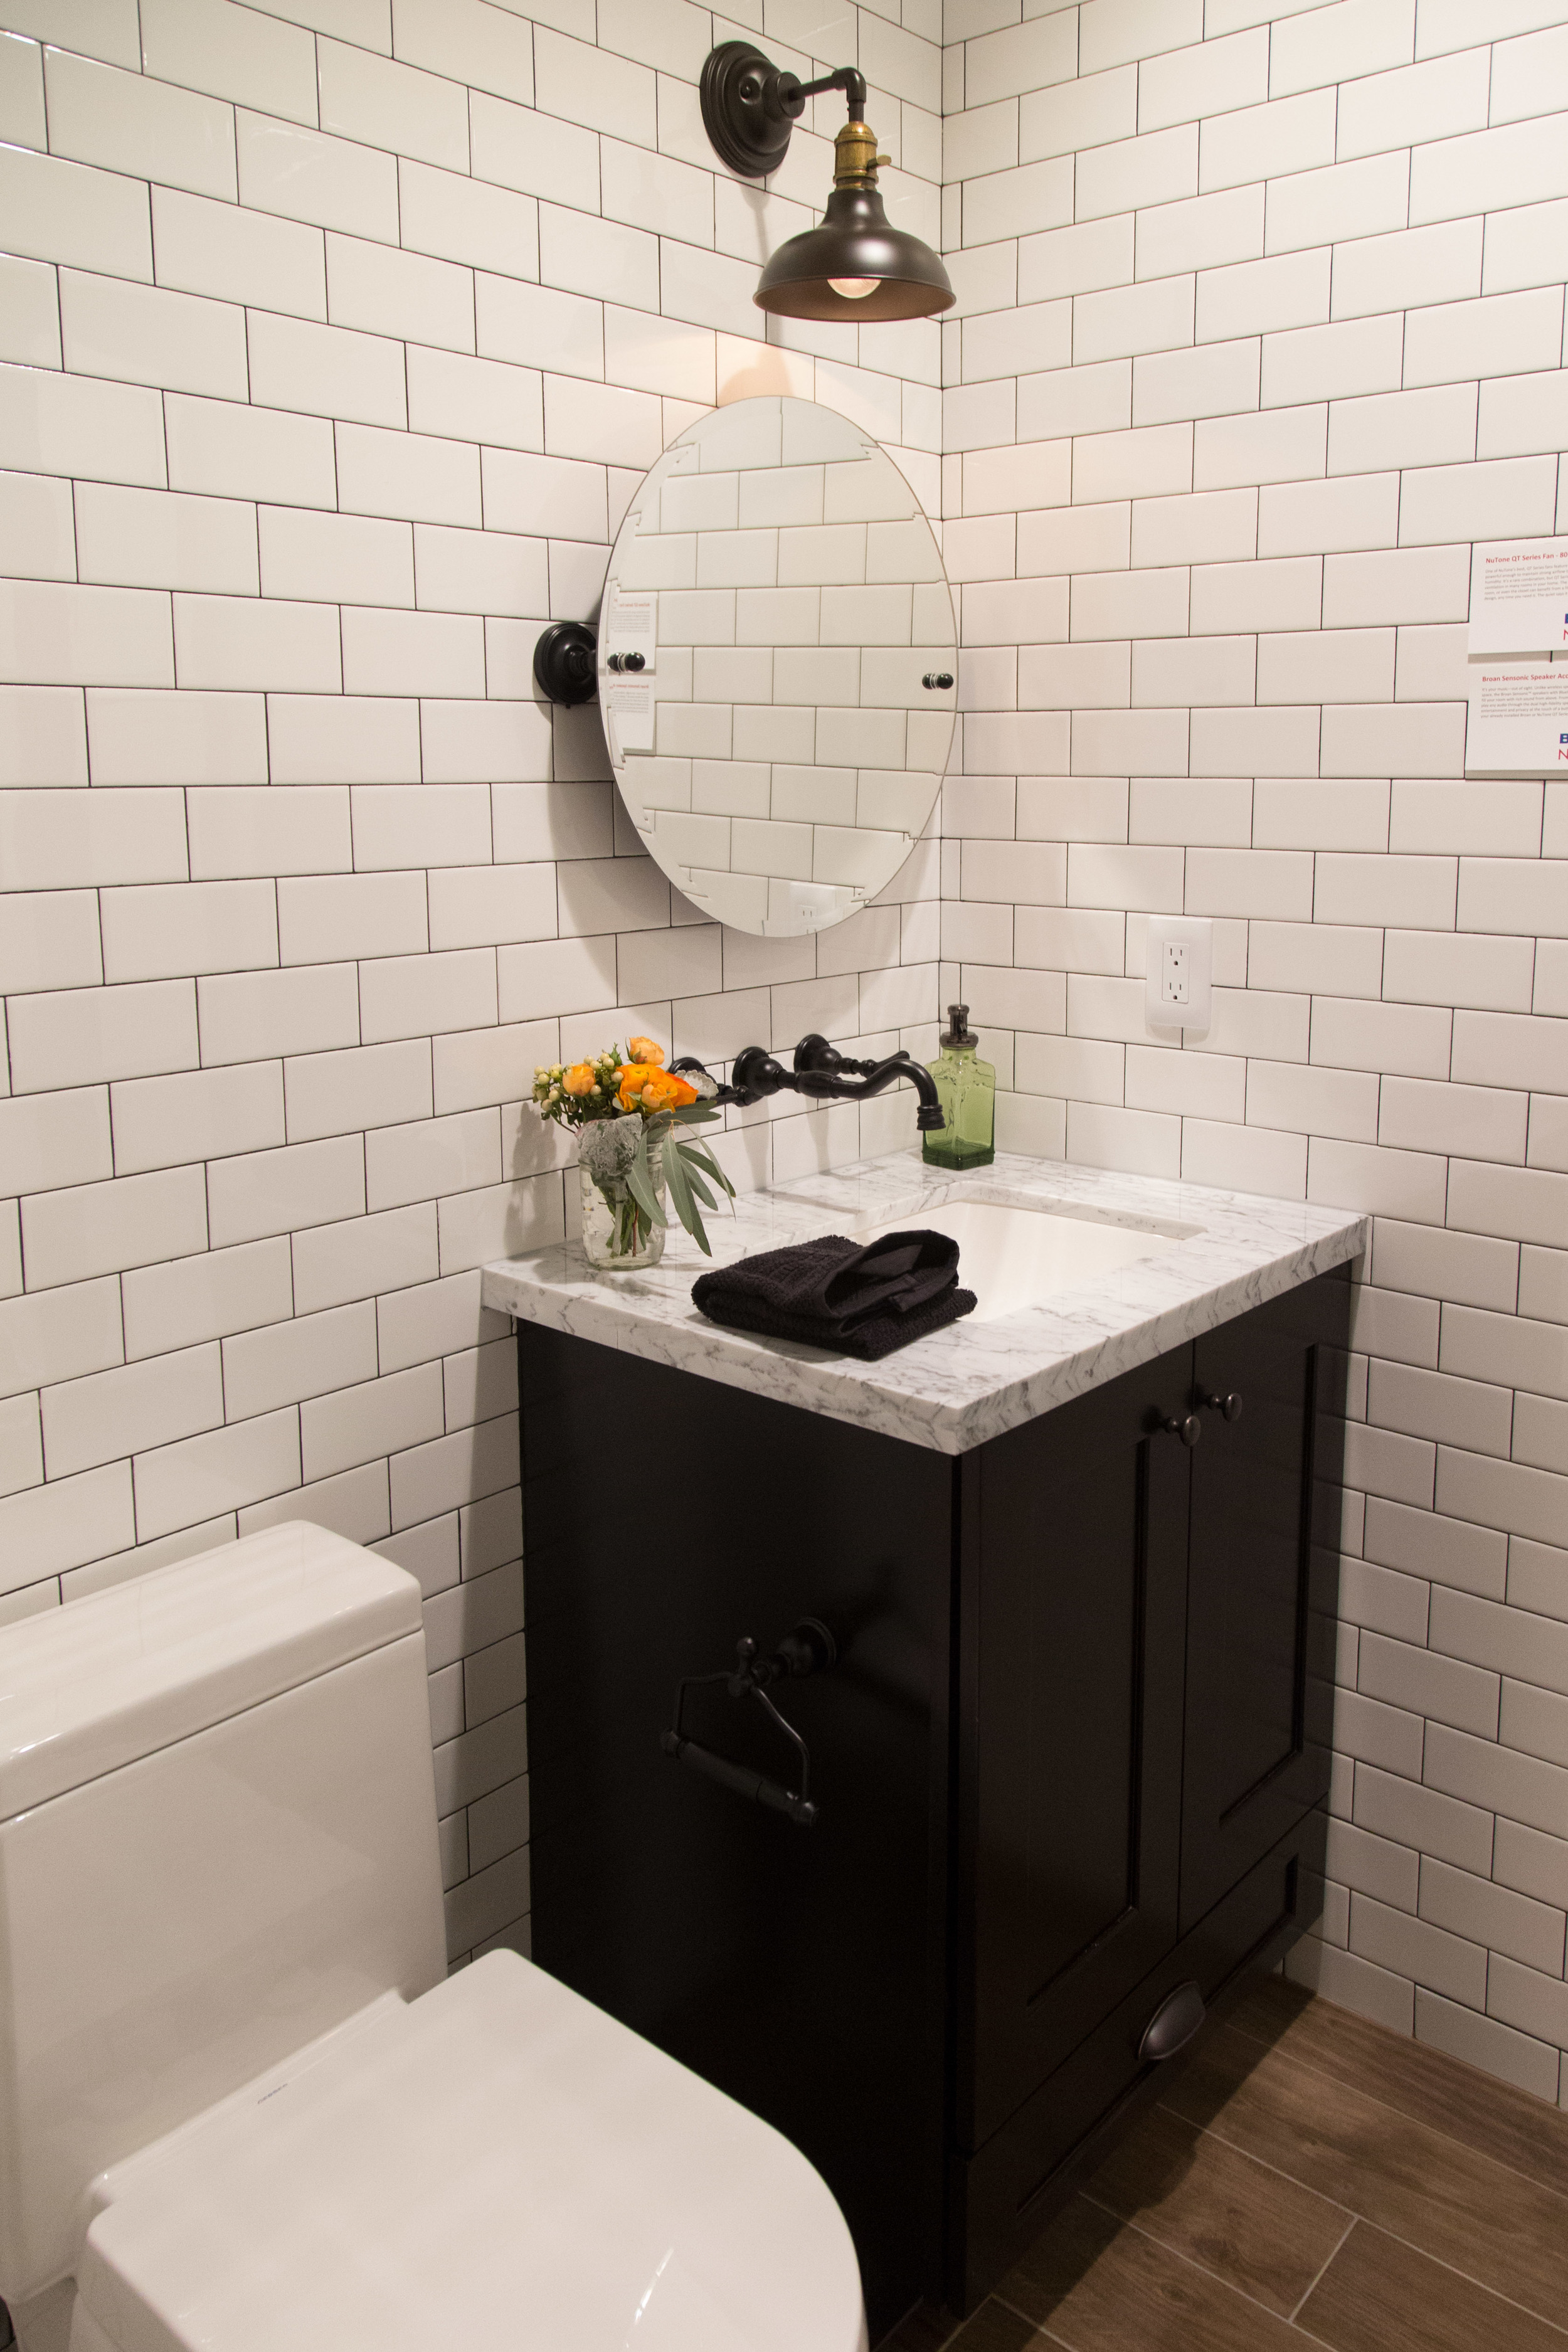 Bathroom in guest suite, subway tile, wall mount faucet, black and white | Interior Designer: Bobby Berk